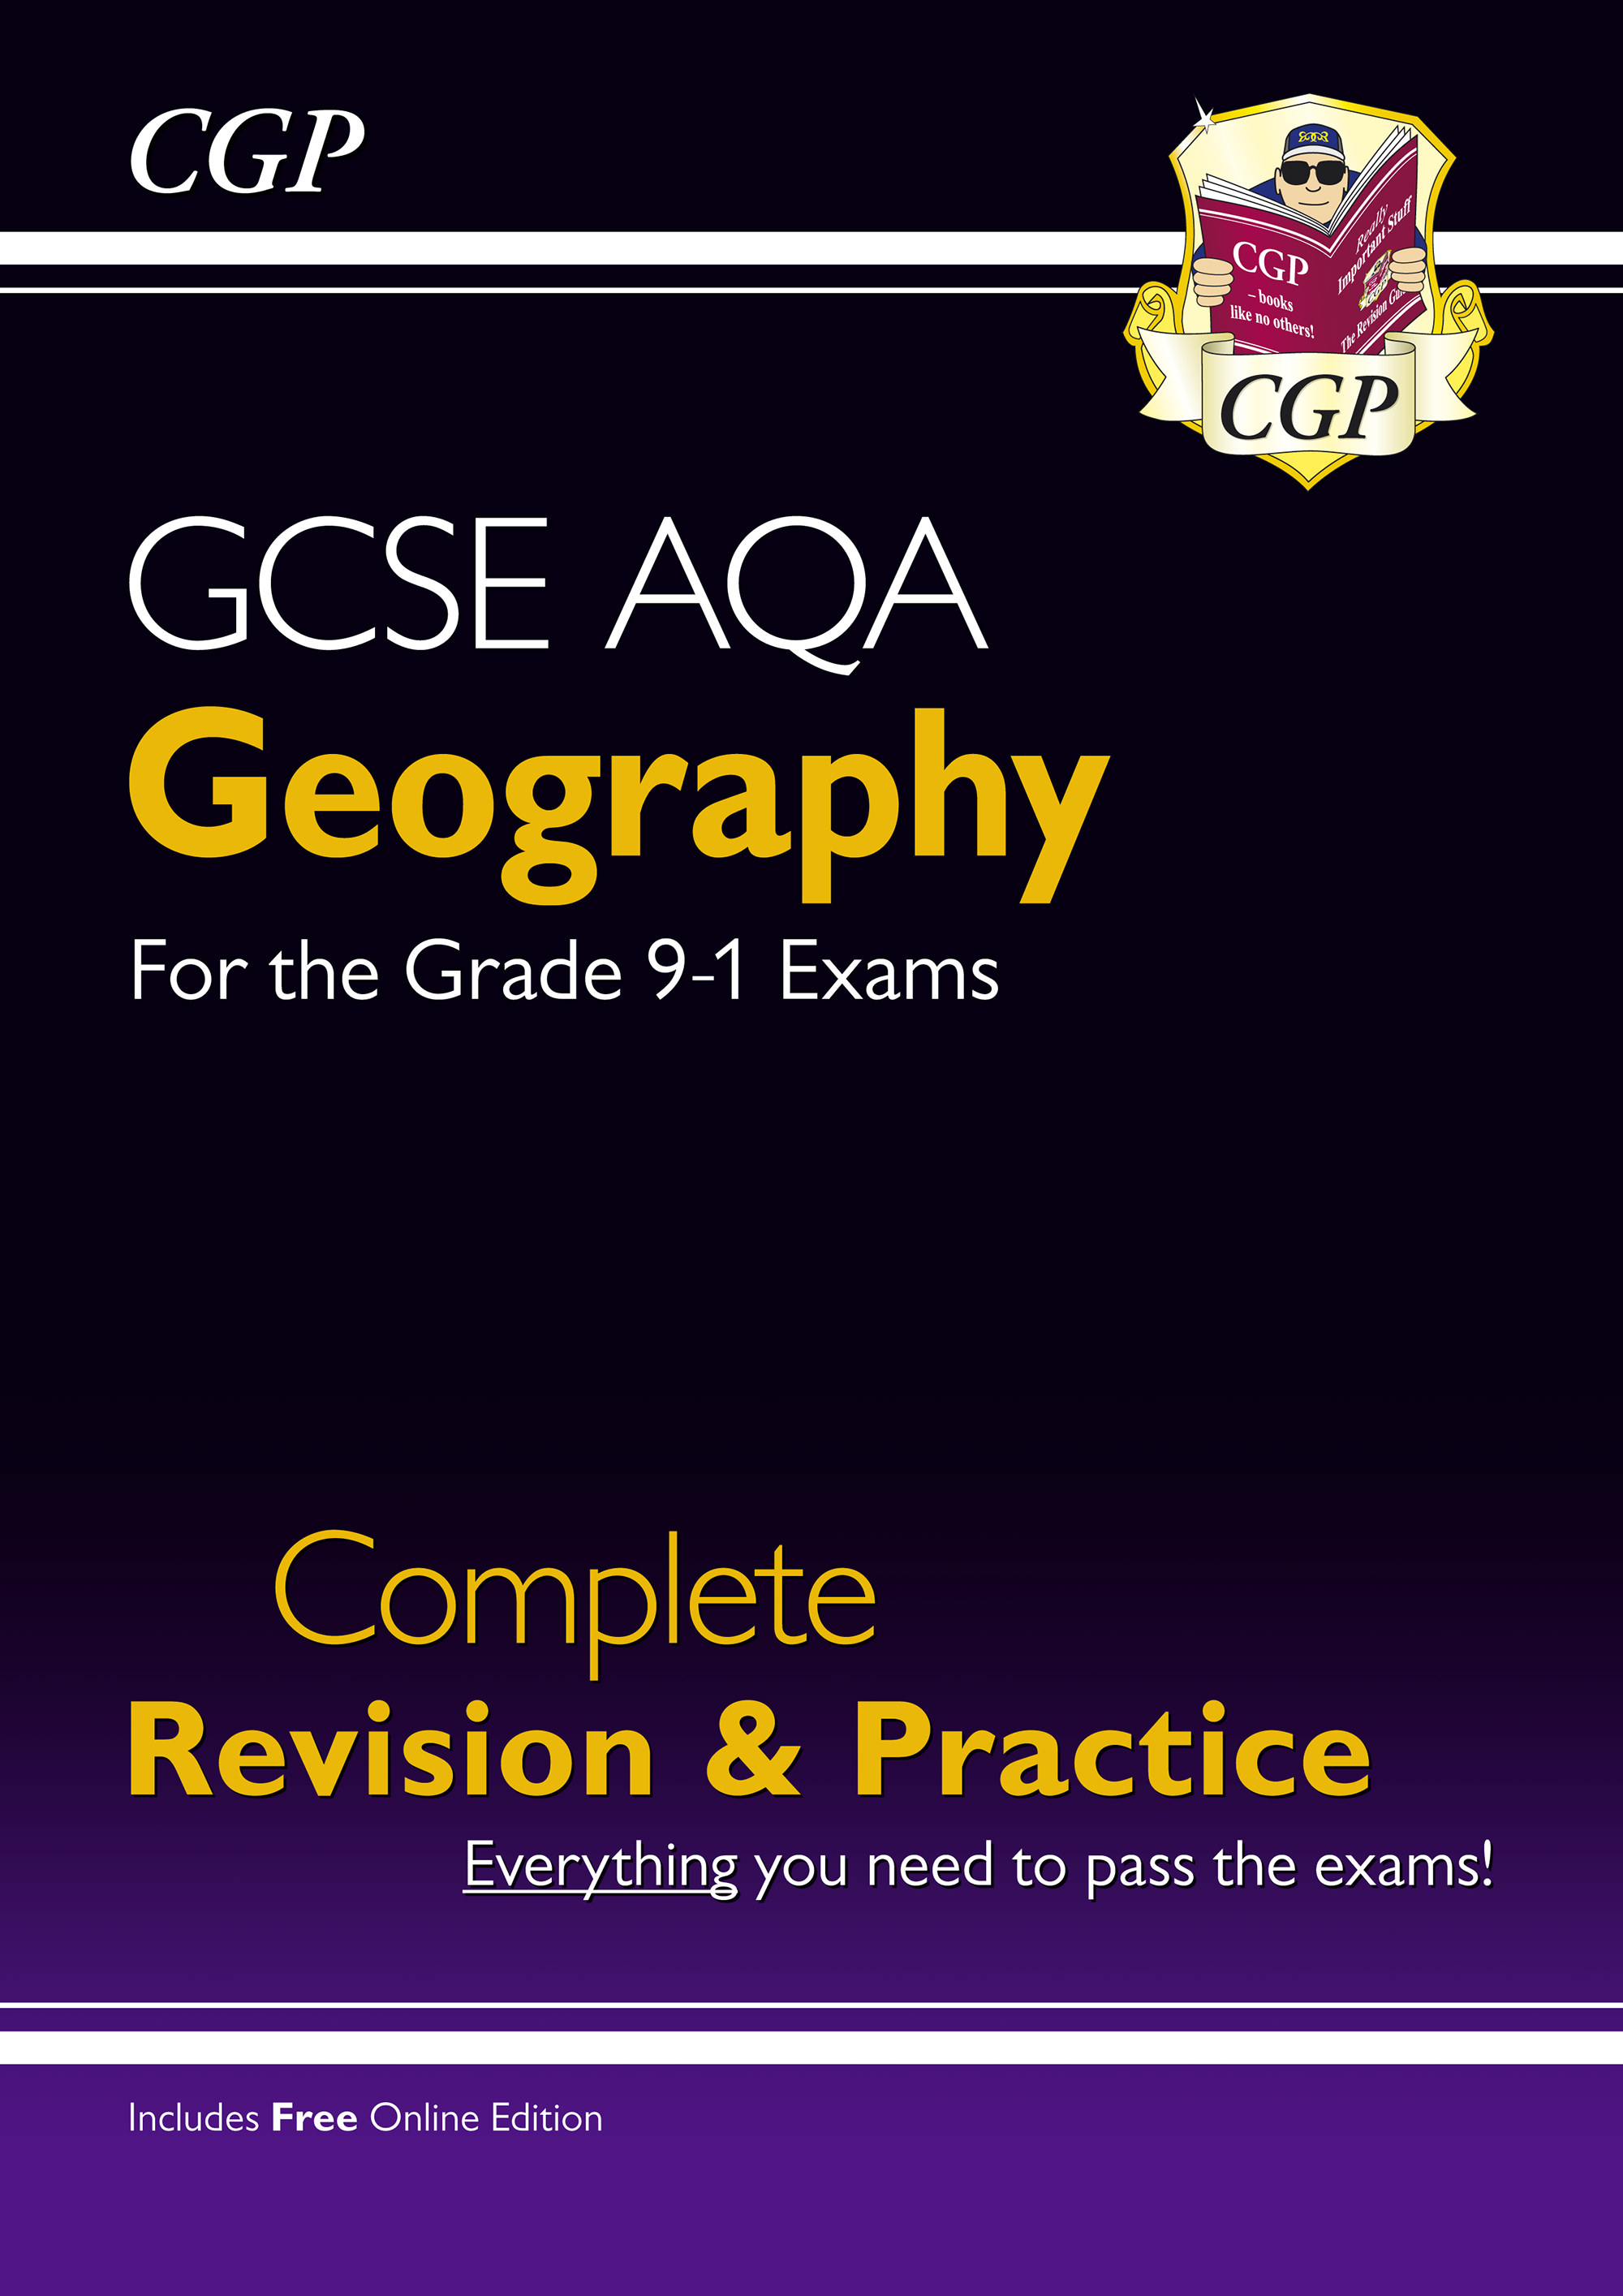 GAS41 - New Grade 9-1 GCSE Geography AQA Complete Revision & Practice (with Online Edition)